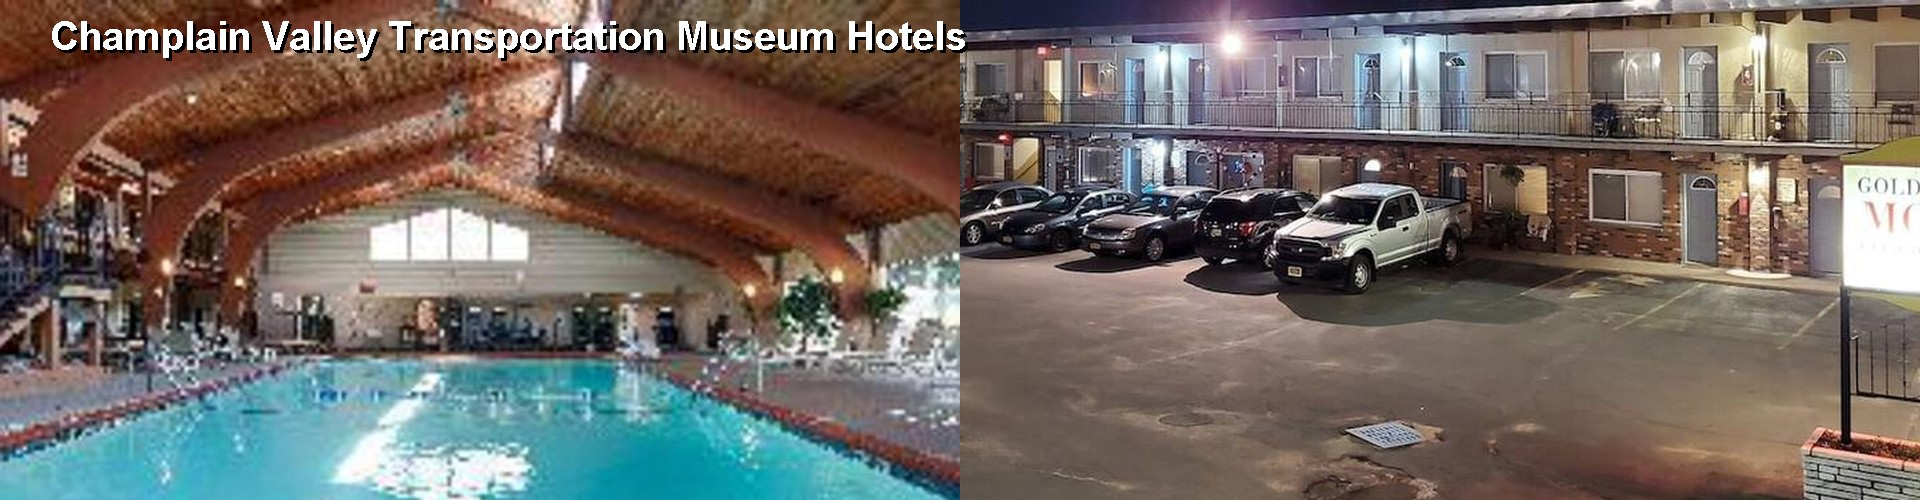 5 Best Hotels near Champlain Valley Transportation Museum